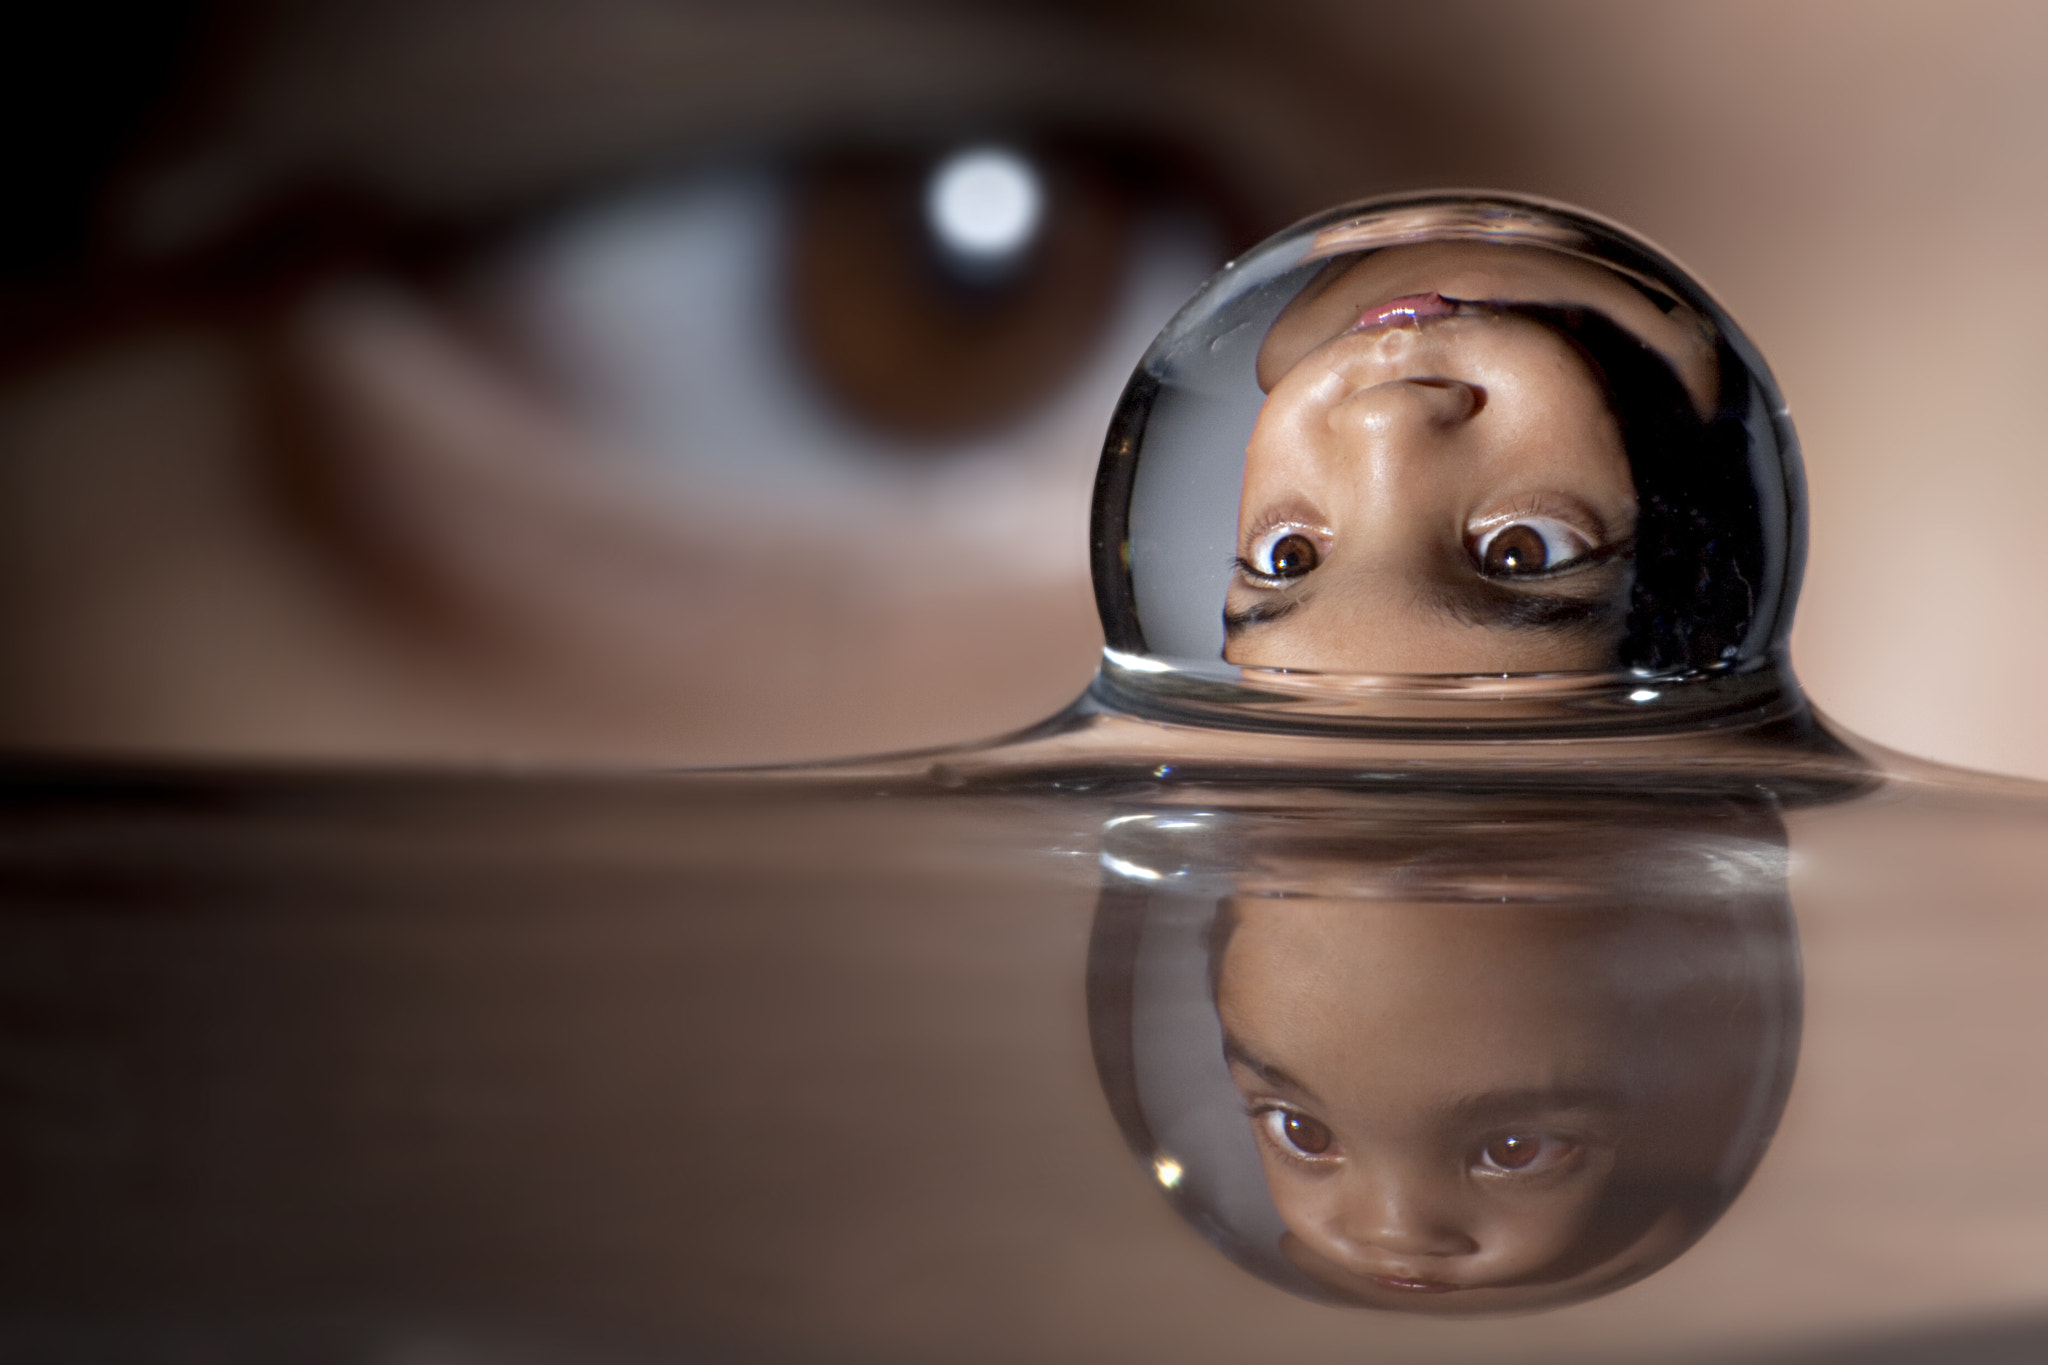 Photograph Refracted by Annemarie Rulos - vd Berg on 500px